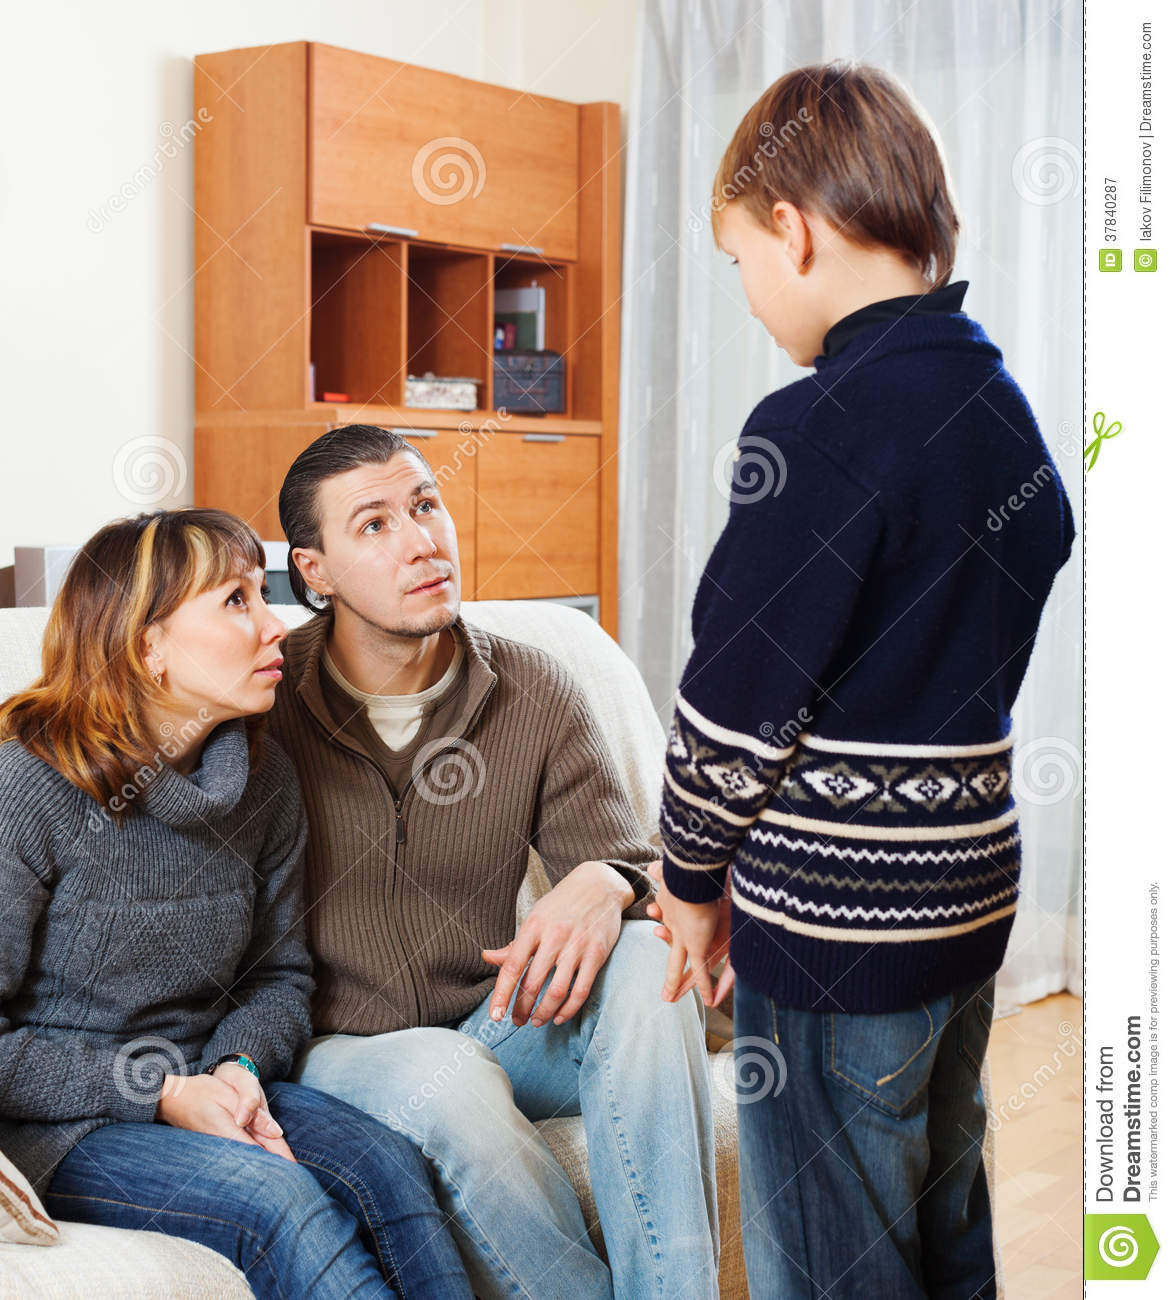 Serious Parents Scolding Son Stock Image - Image of person ...